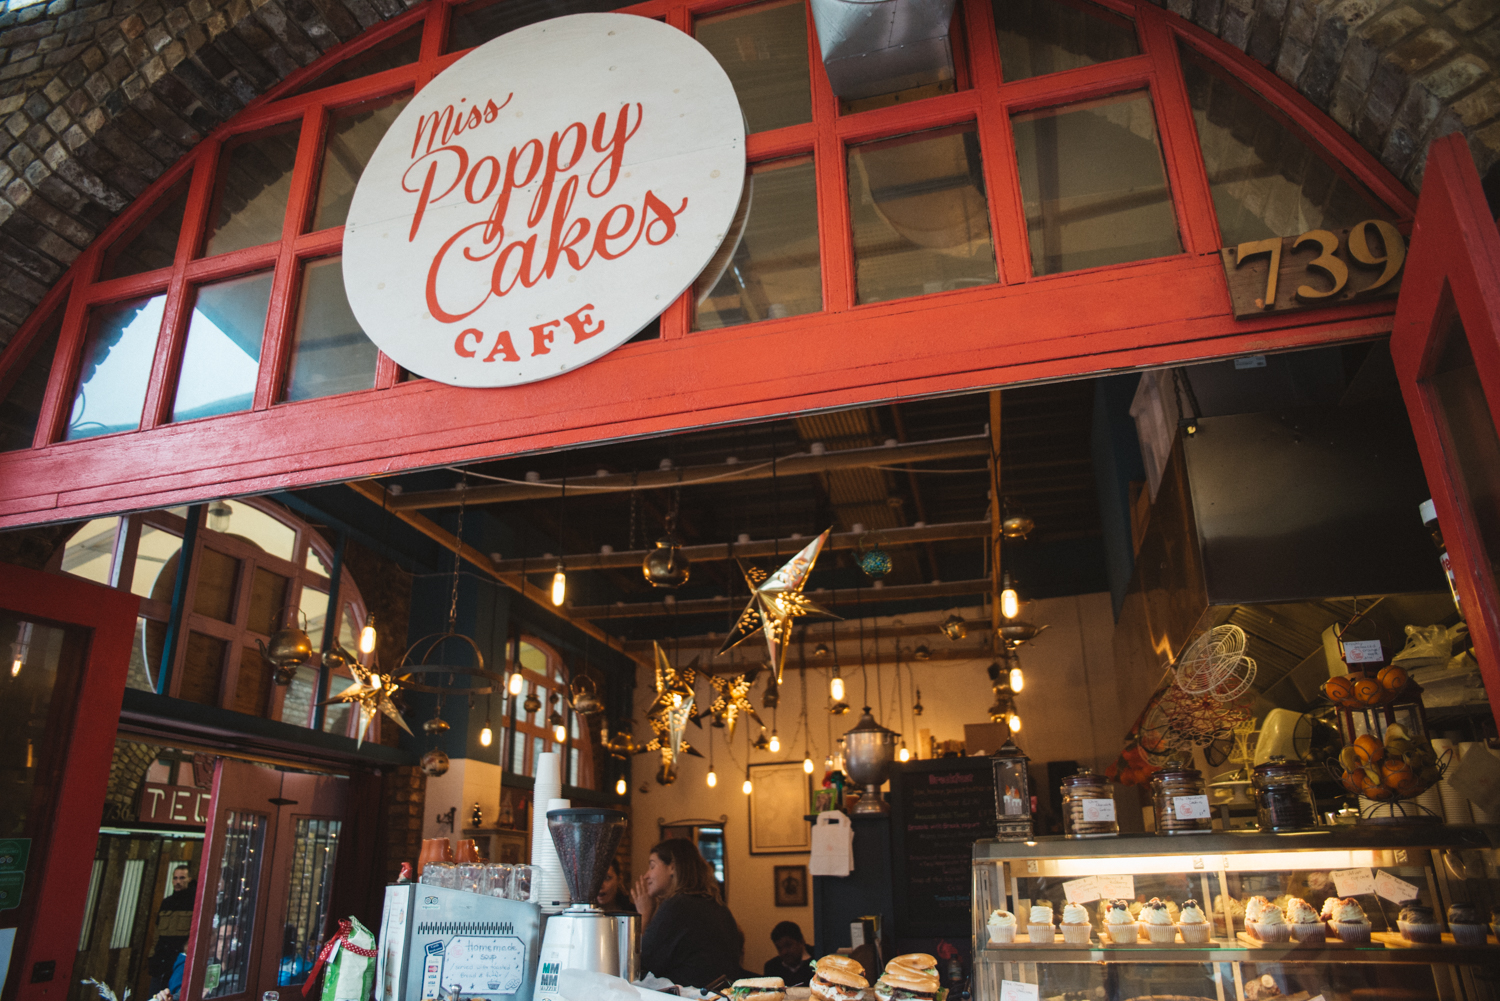 Miss Poppy Cakes Cafe at Camden Market